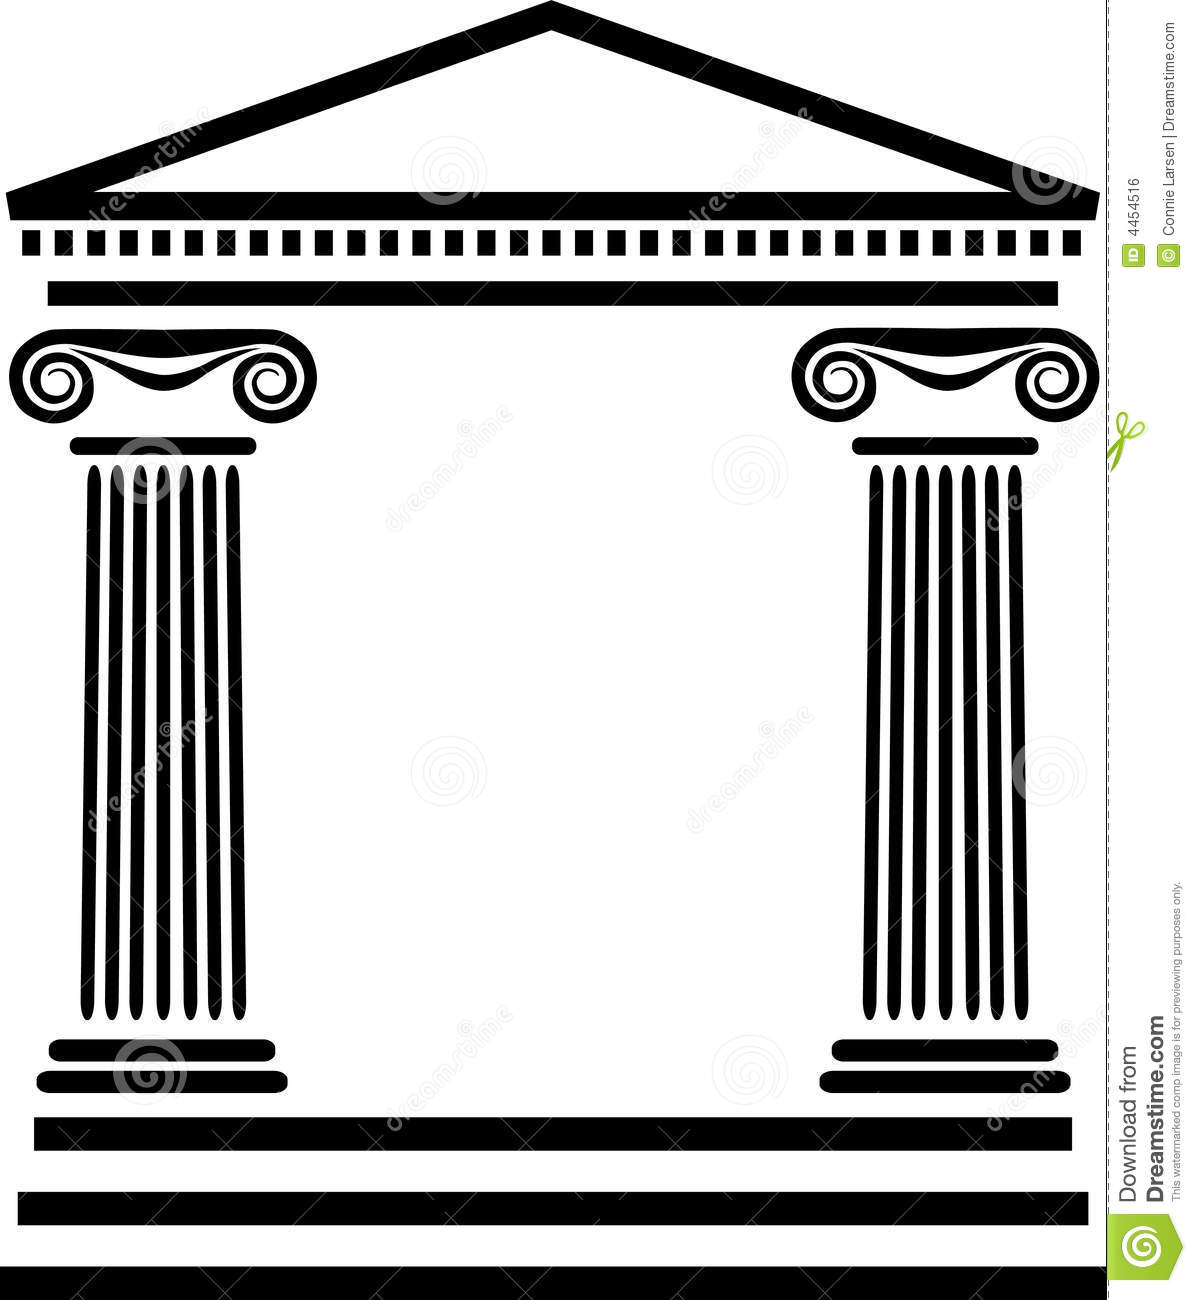 Architecture clipart greek column Columns 6th Roman Greek columns